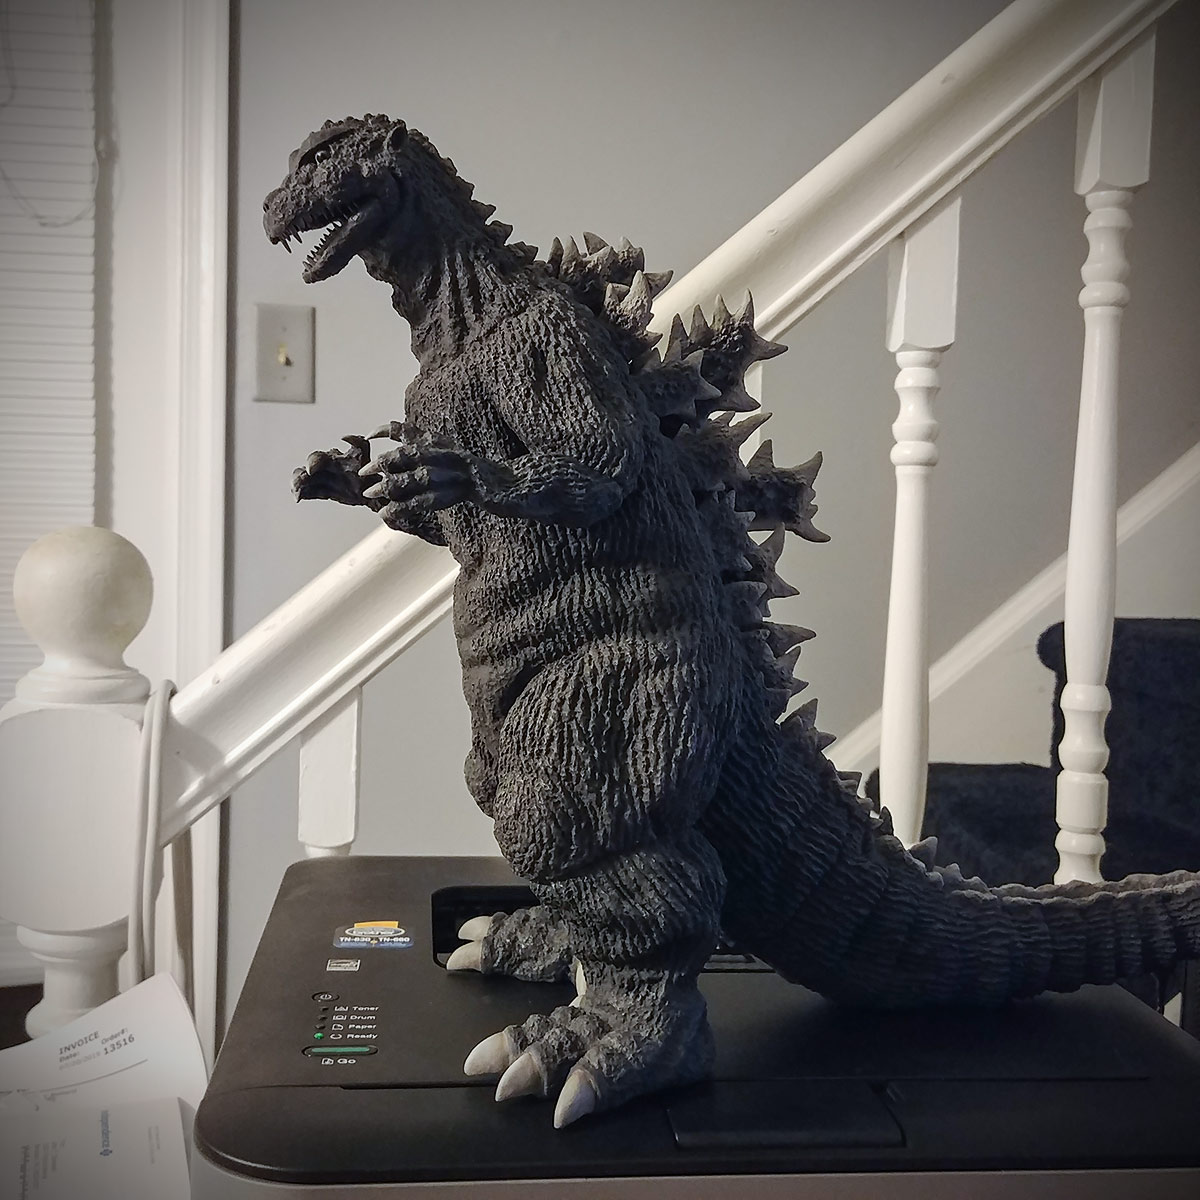 X-Plus 30cm Series Godzilla 1954 vinyl figure on my desk.